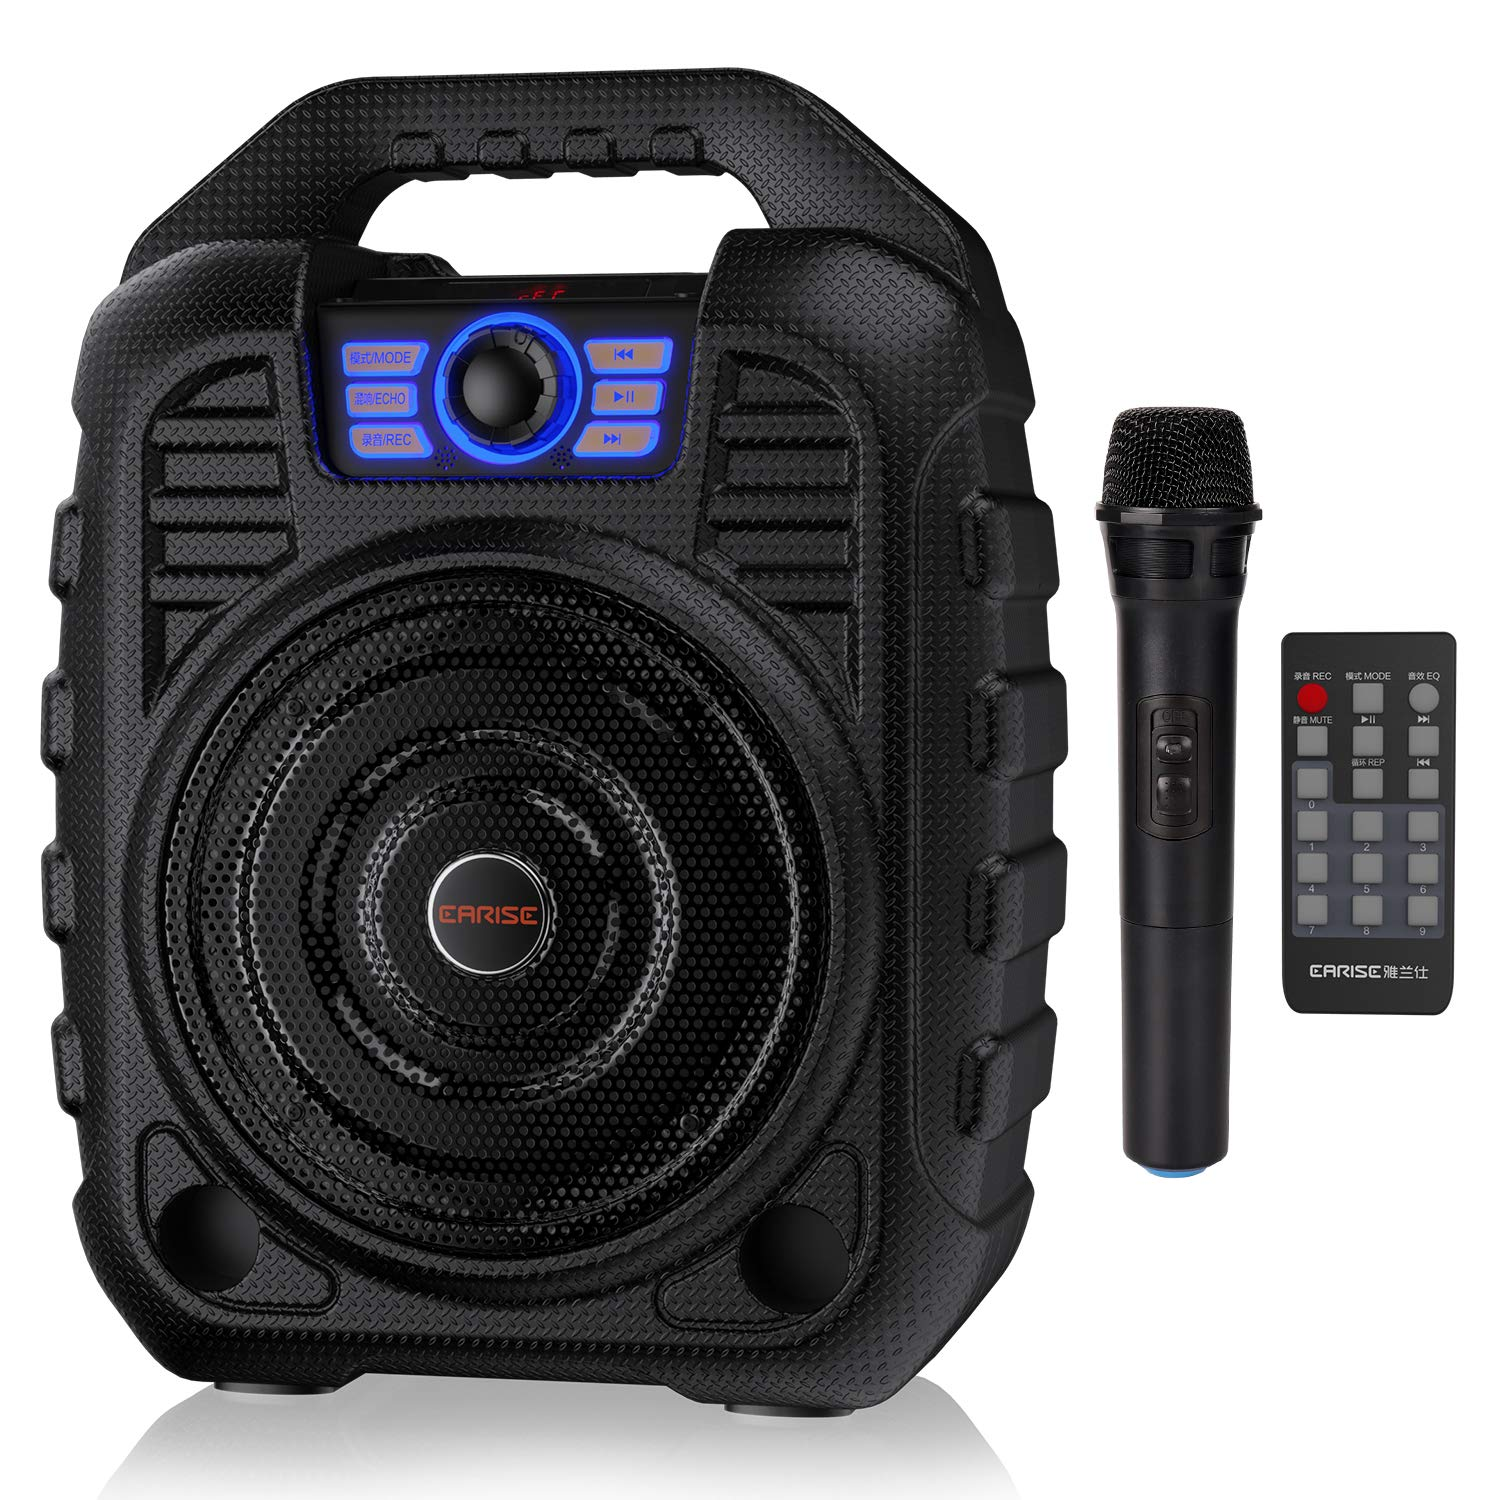 EARISE T26 Portable PA System Bluetooth Speaker with Wireless Microphone, Rechargeable Karaoke Machine with FM Radio, Audio Recording, Remote Control, Supports TF Card/USB, Perfect for Party by Earise